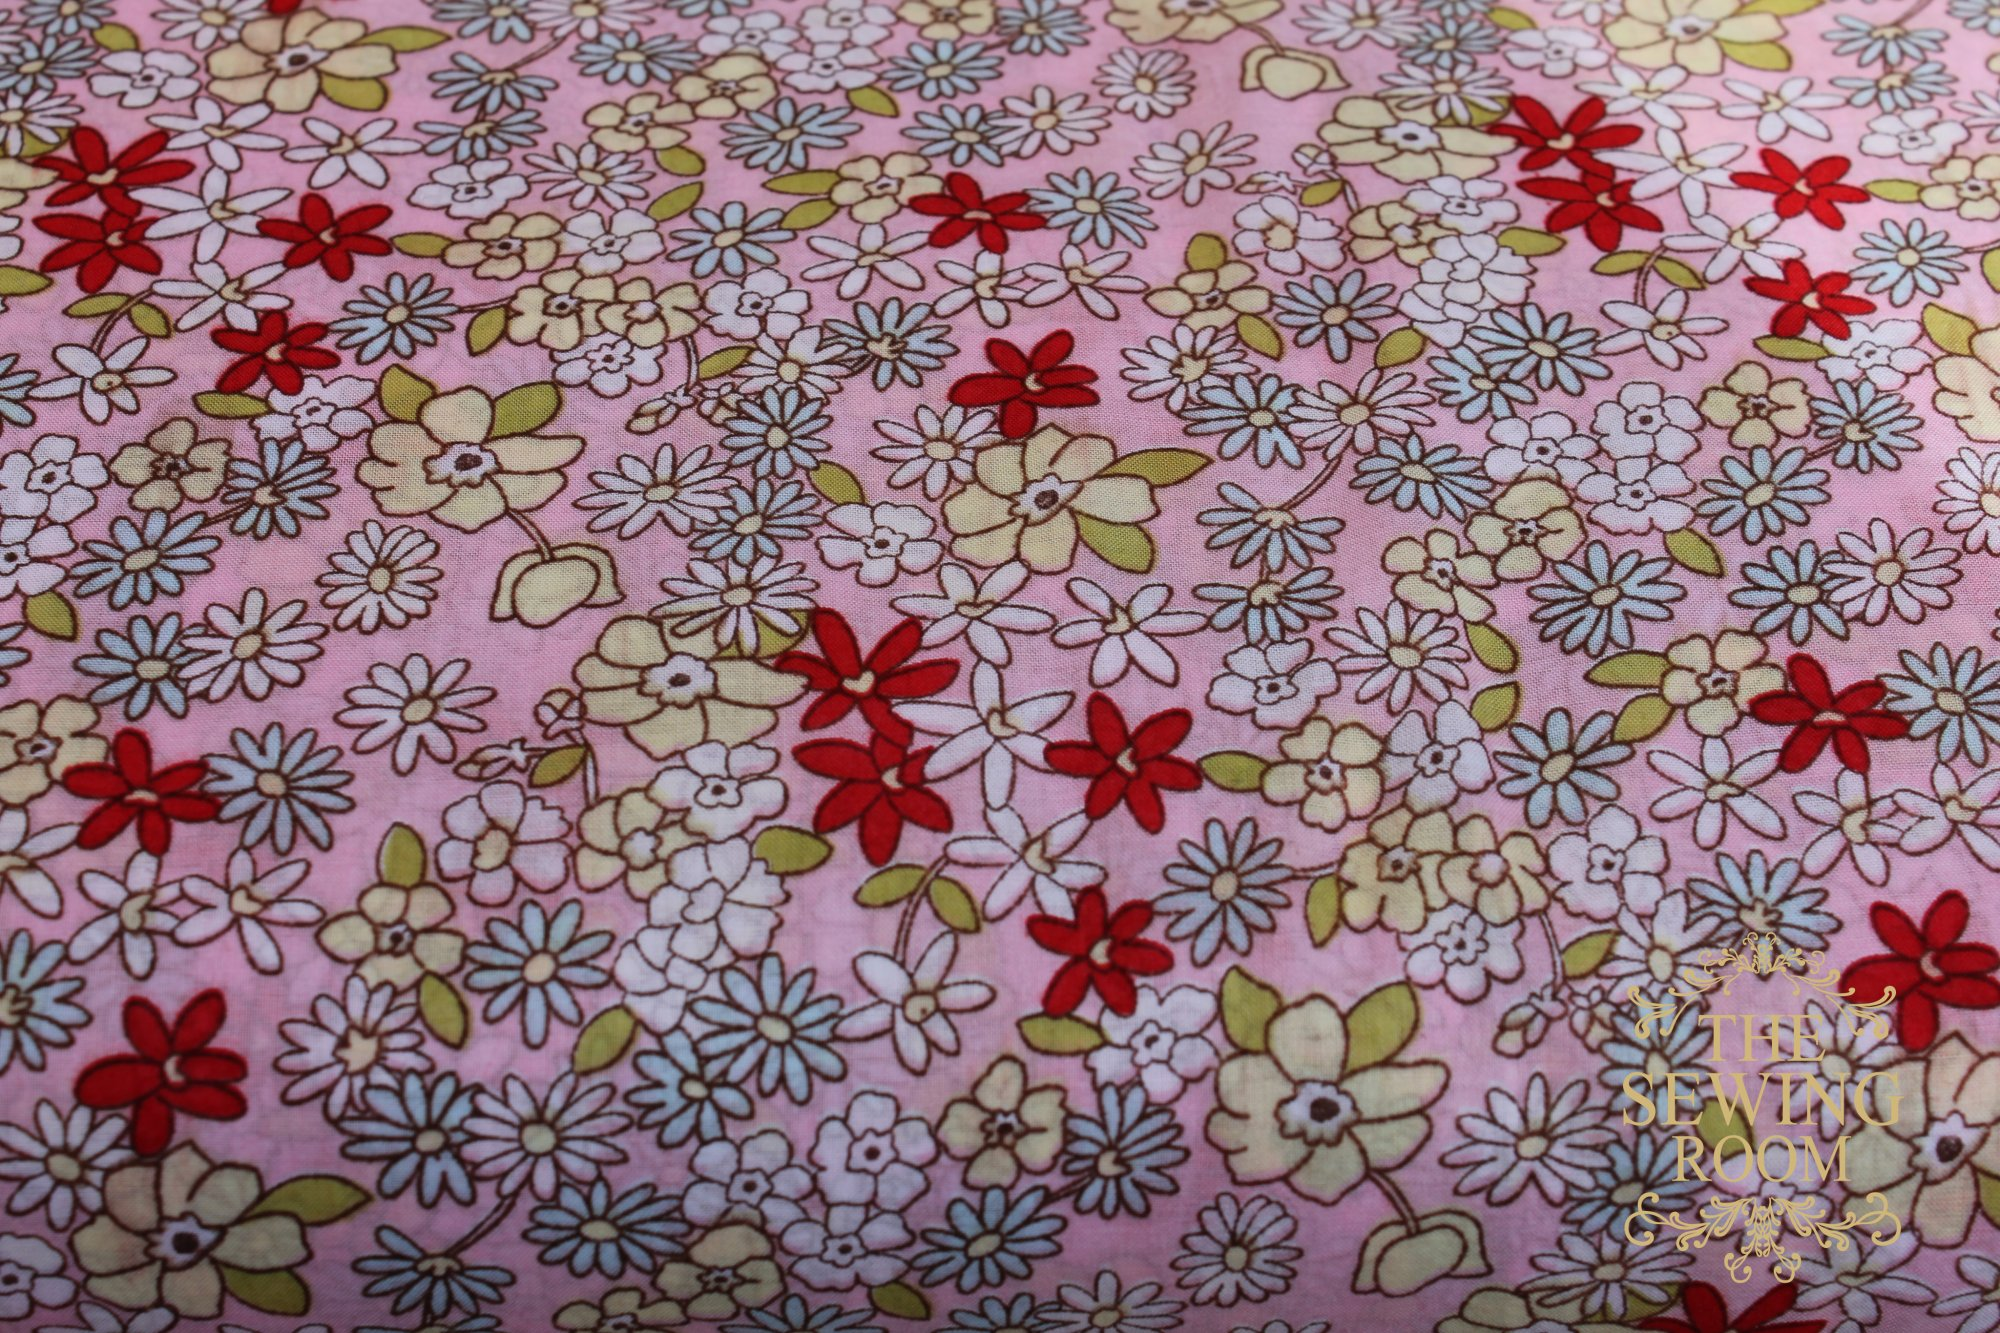 Tiffany Lawn Pink Yellow Lime and Aqua Floral Fabric by Spechler-Vogel Textiles